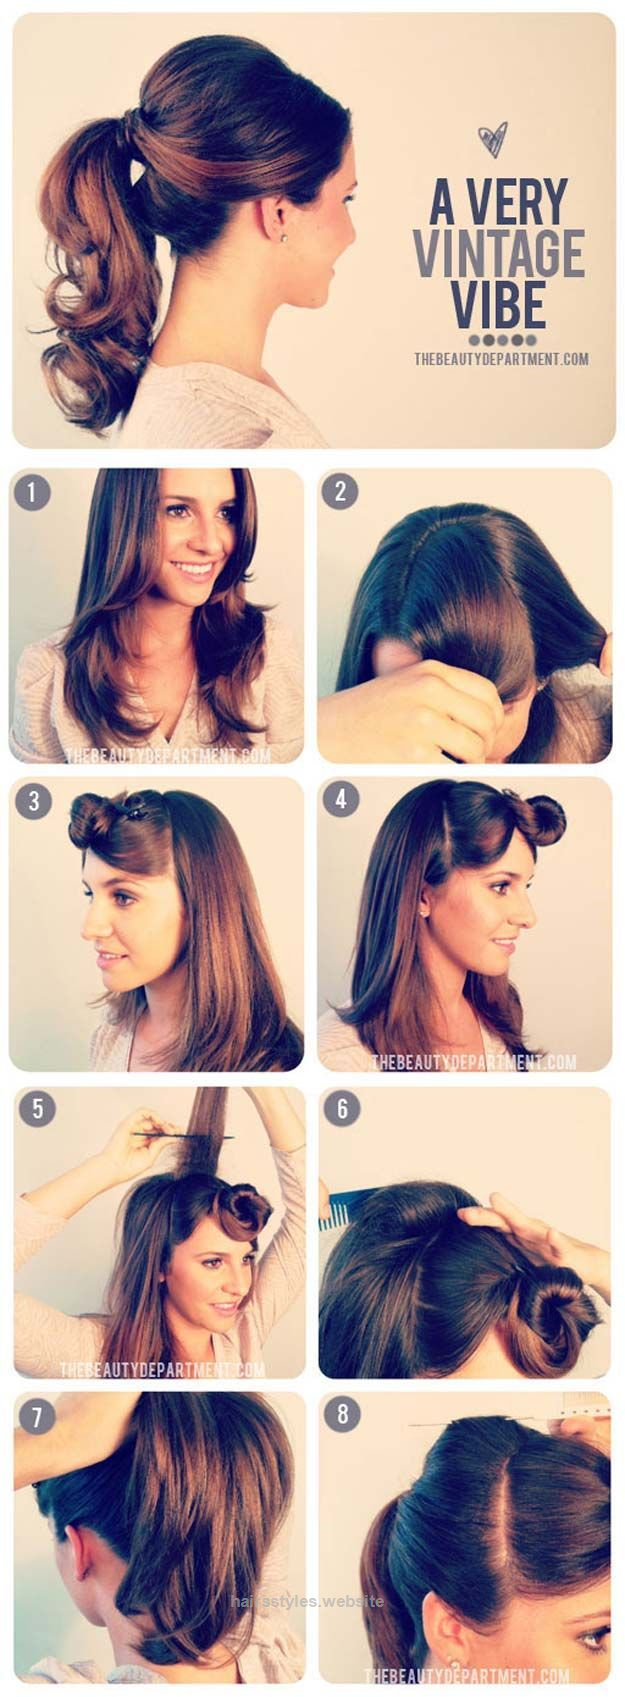 Check Out This Easy Hairstyles For Work 1950 S Inspired Ponytail Quick And Easy Hairstyles Easy Work Hairstyles Easy Hairstyles Vintage Hairstyles Tutorial